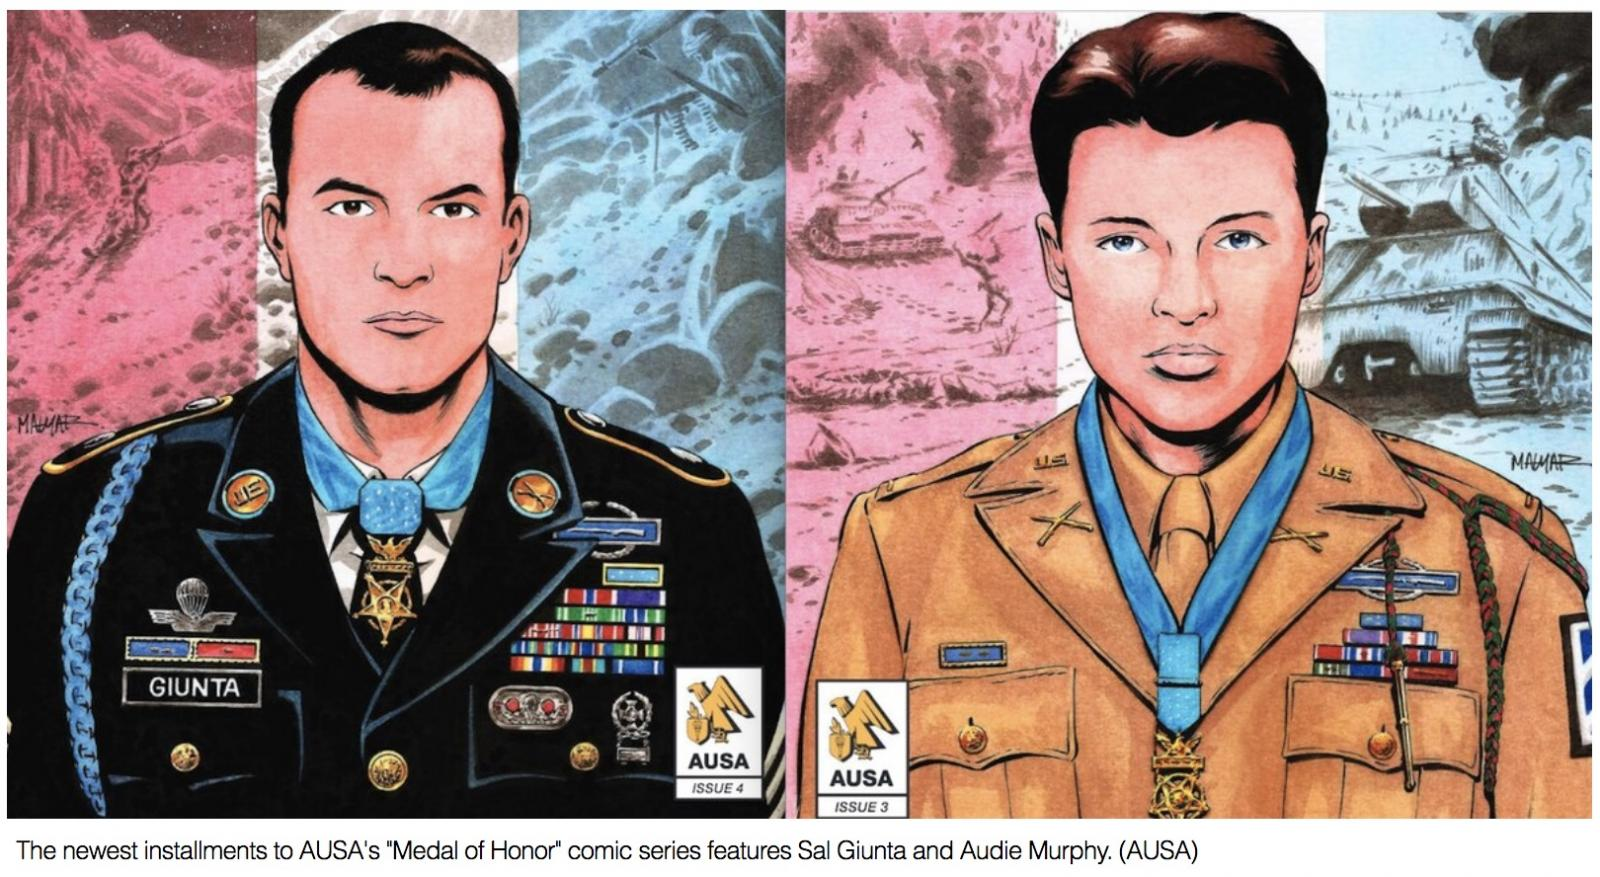 Medal of Honor comic series highlights actions of Audie Murphy and Sal Giunta